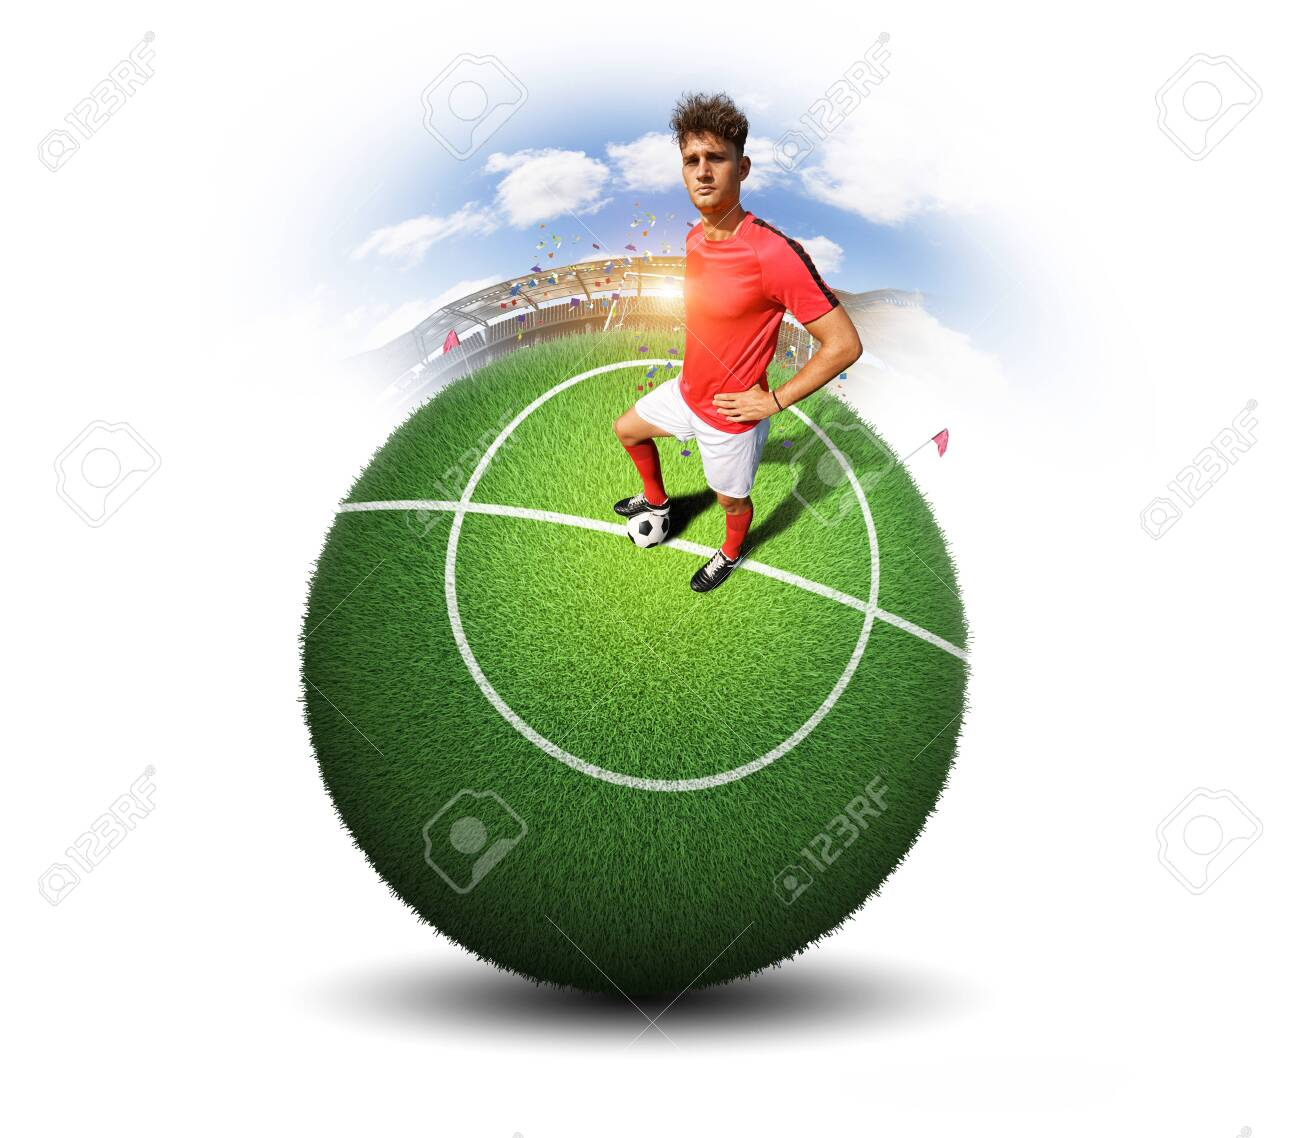 Football player and ball in the stadium - 149493097